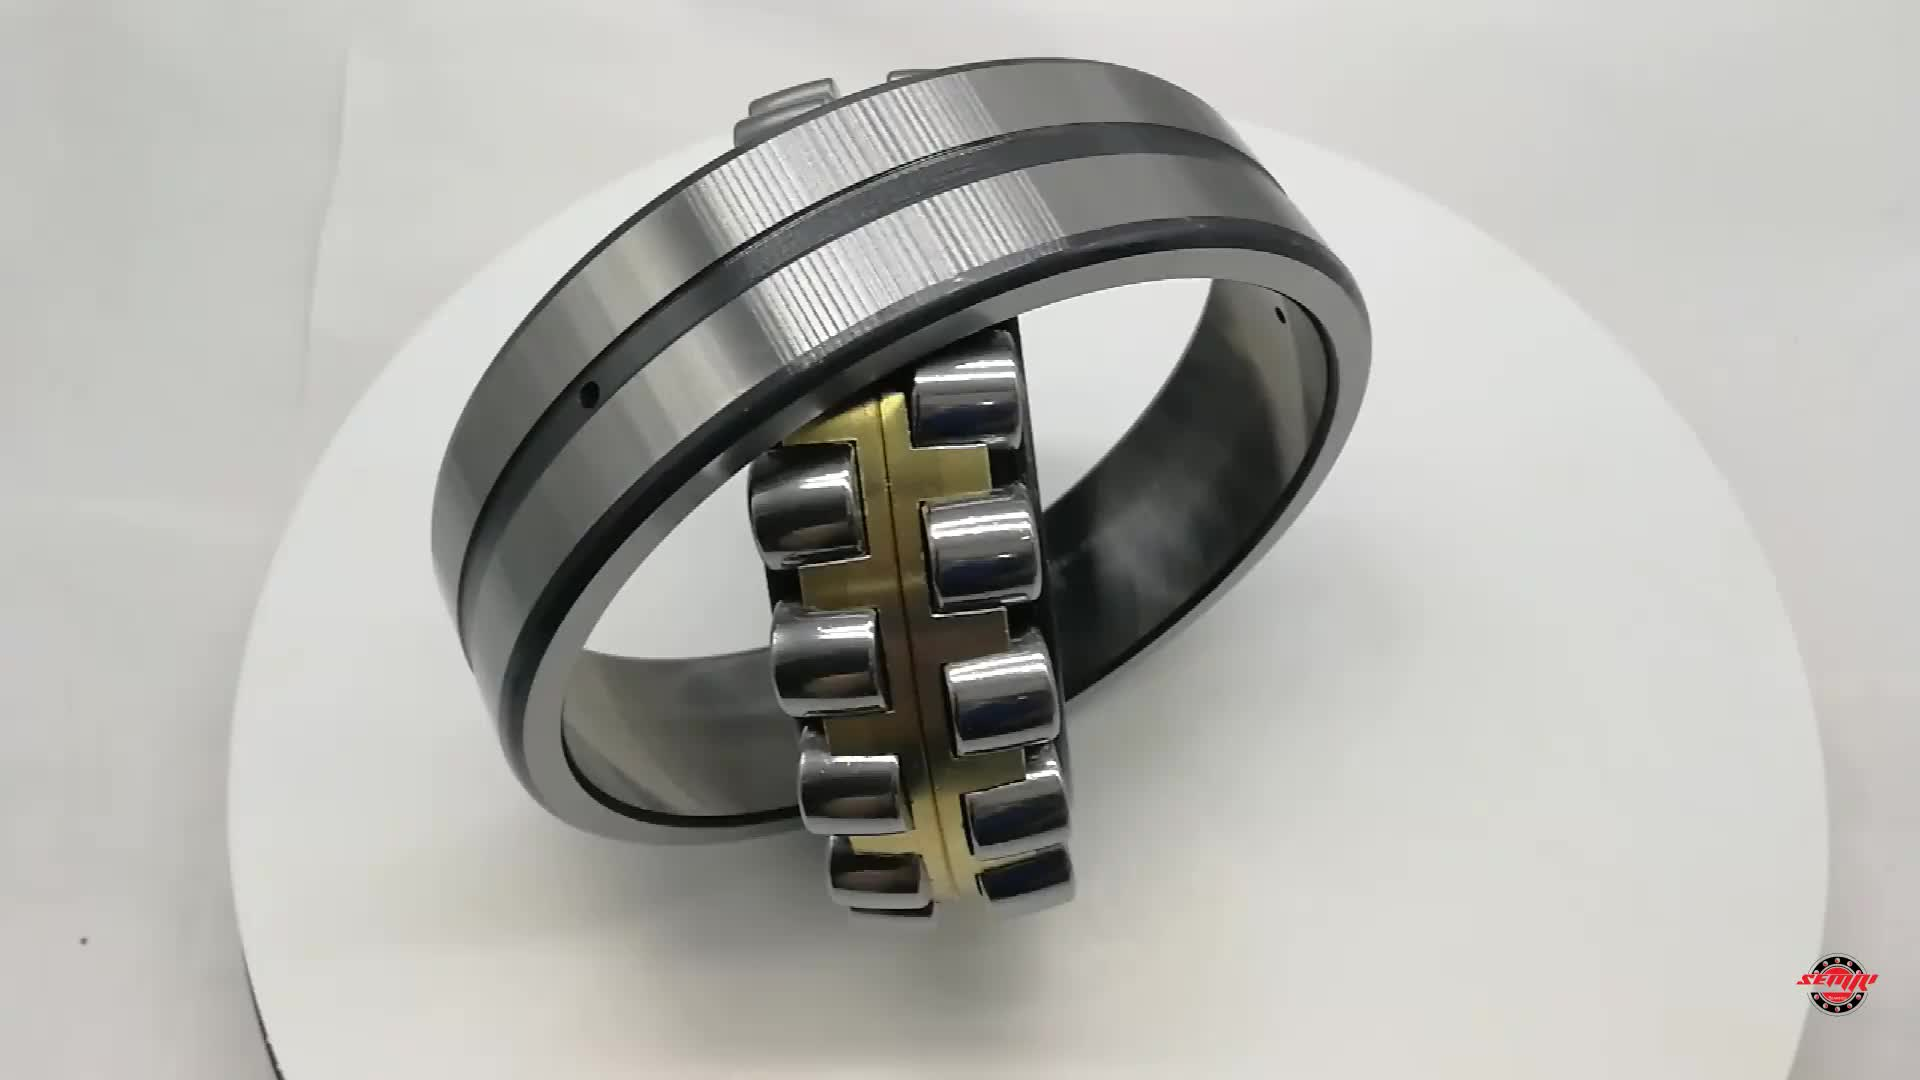 Bainite Quenching 22218 MB C3 W33 Spherical Roller Bearing